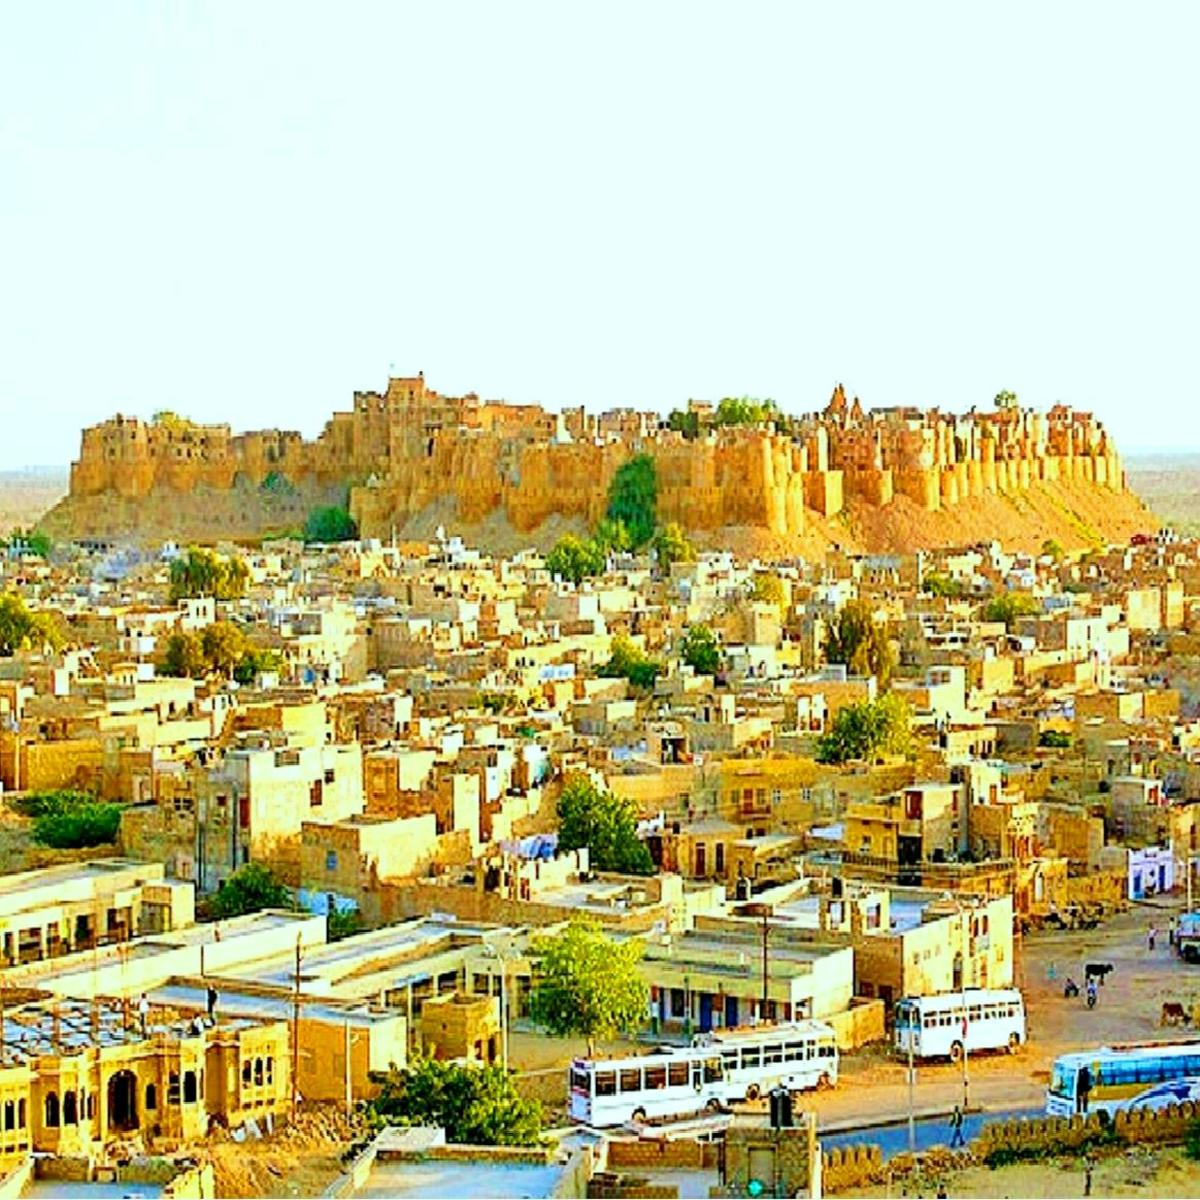 The Jaisalmer Fort: Sand & Desert